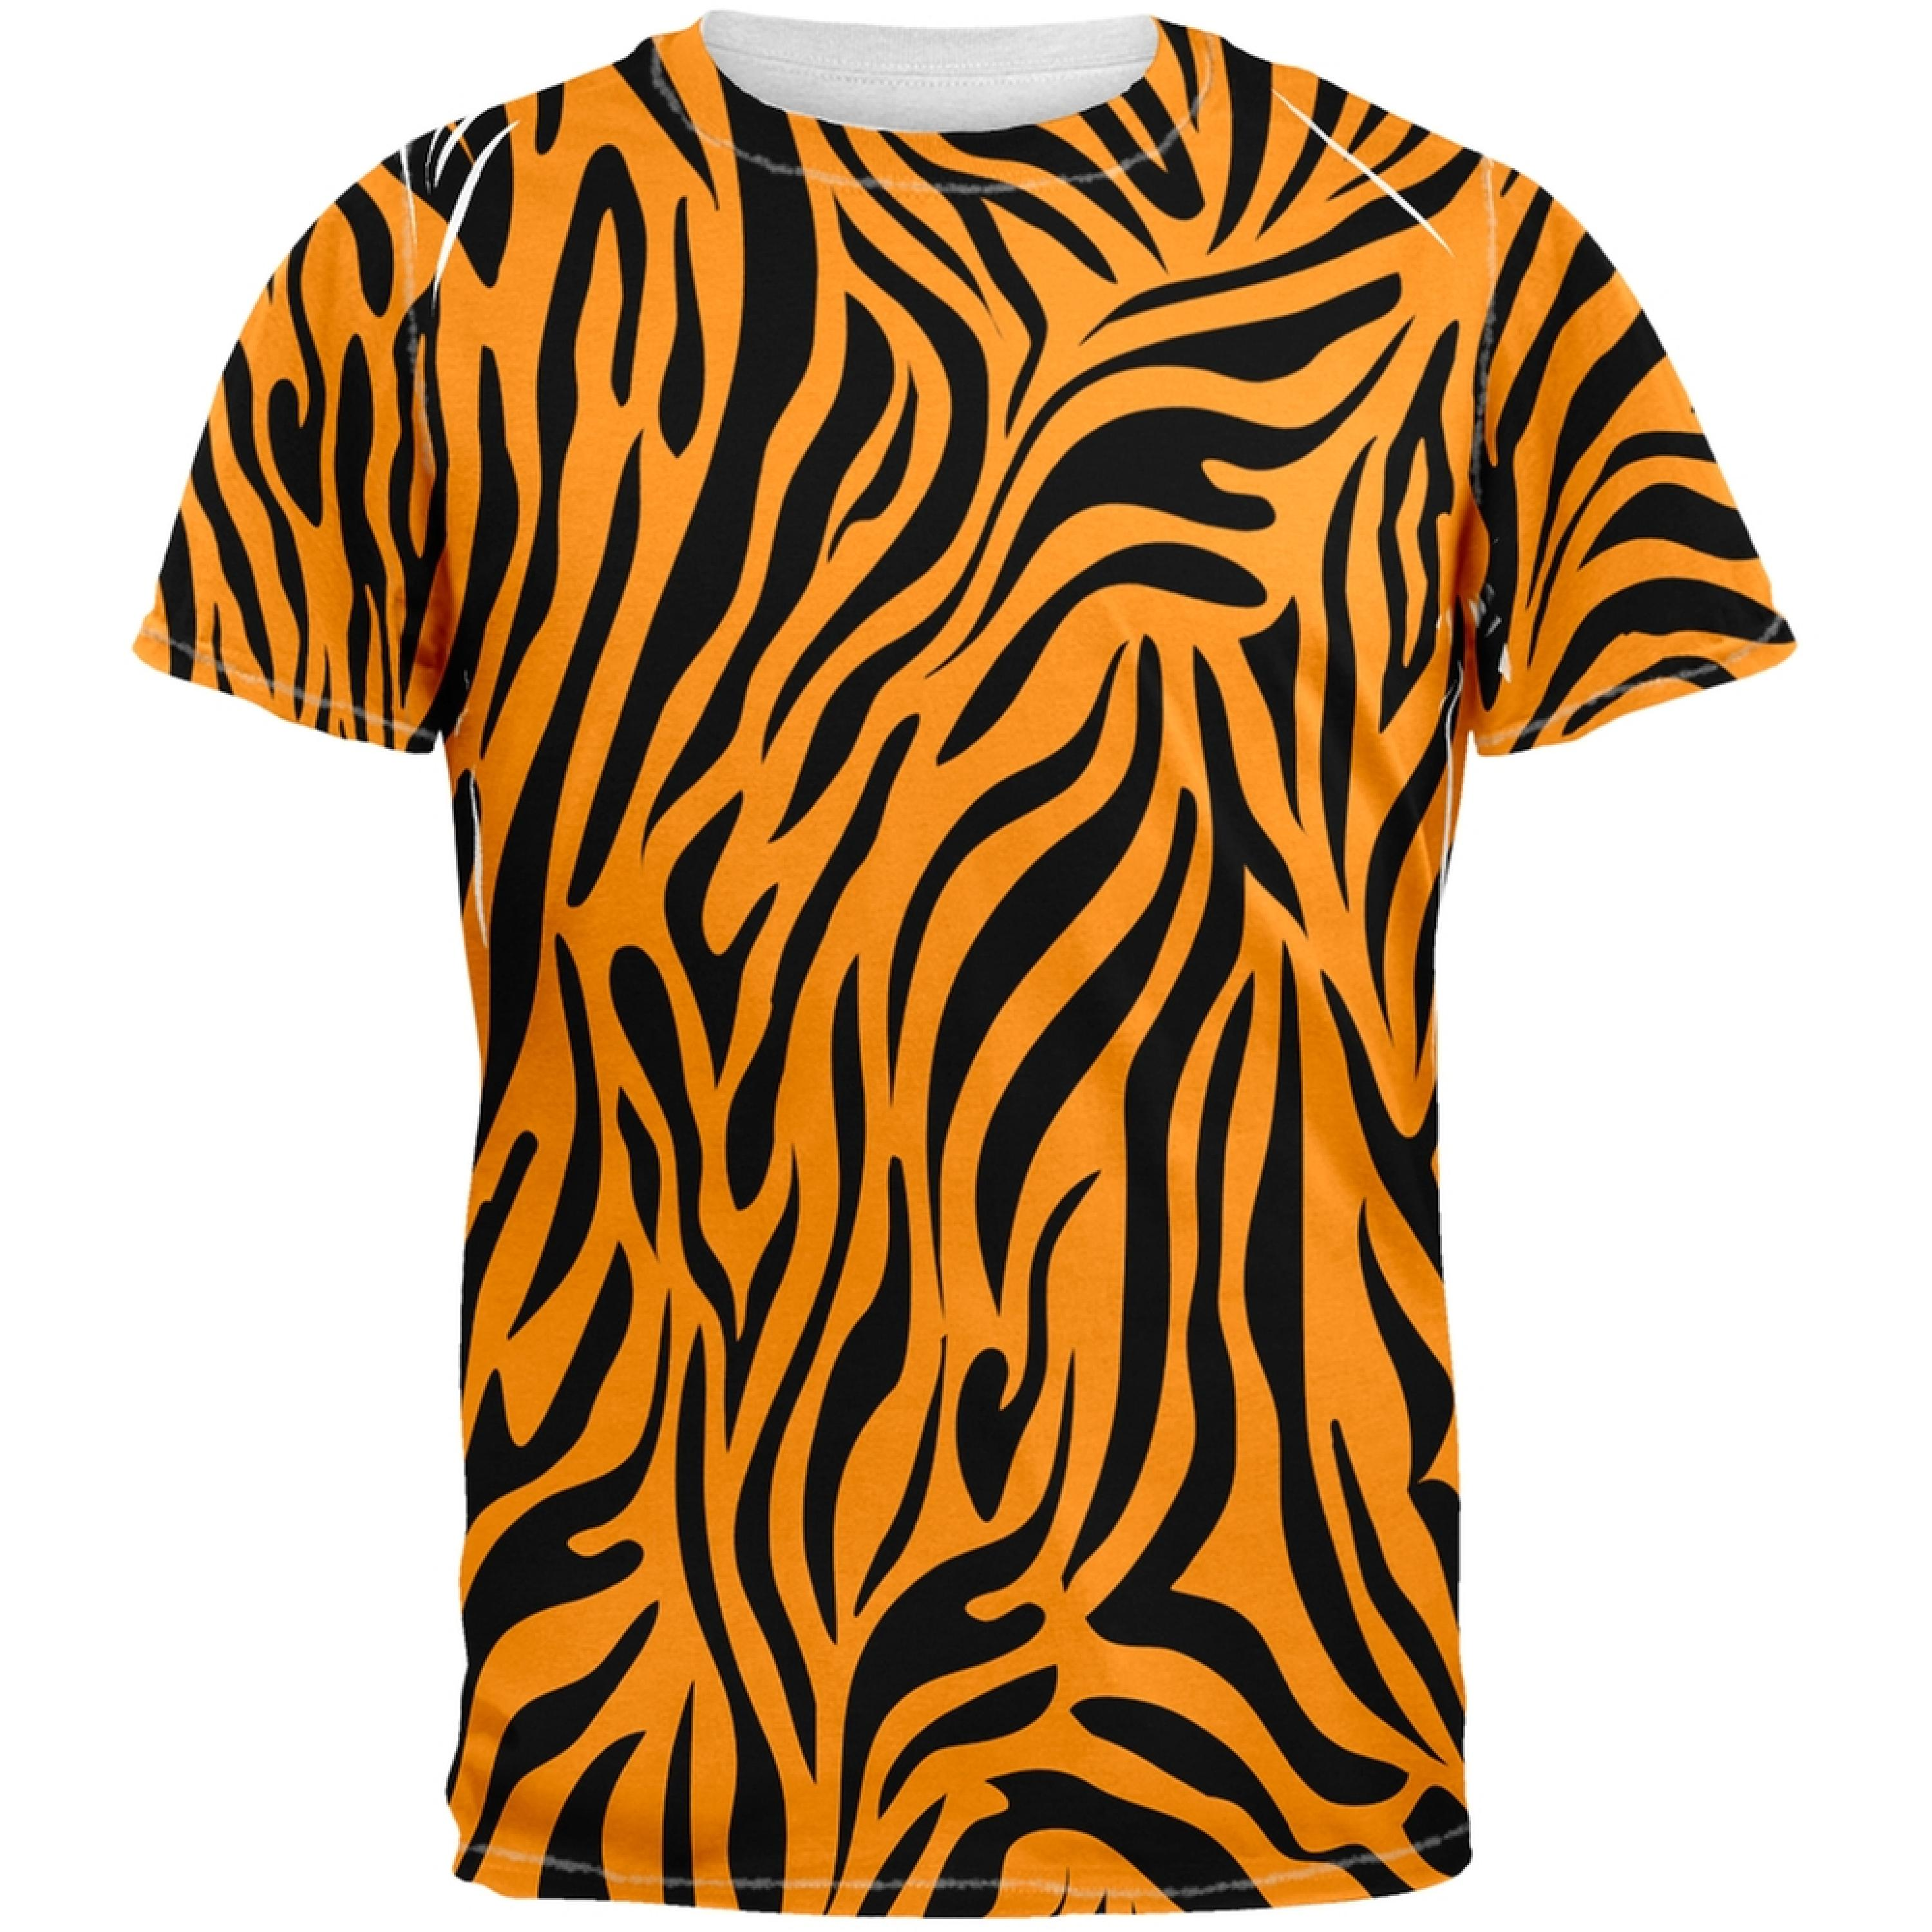 Zebra Print Orange Sublimated Adult T-Shirt